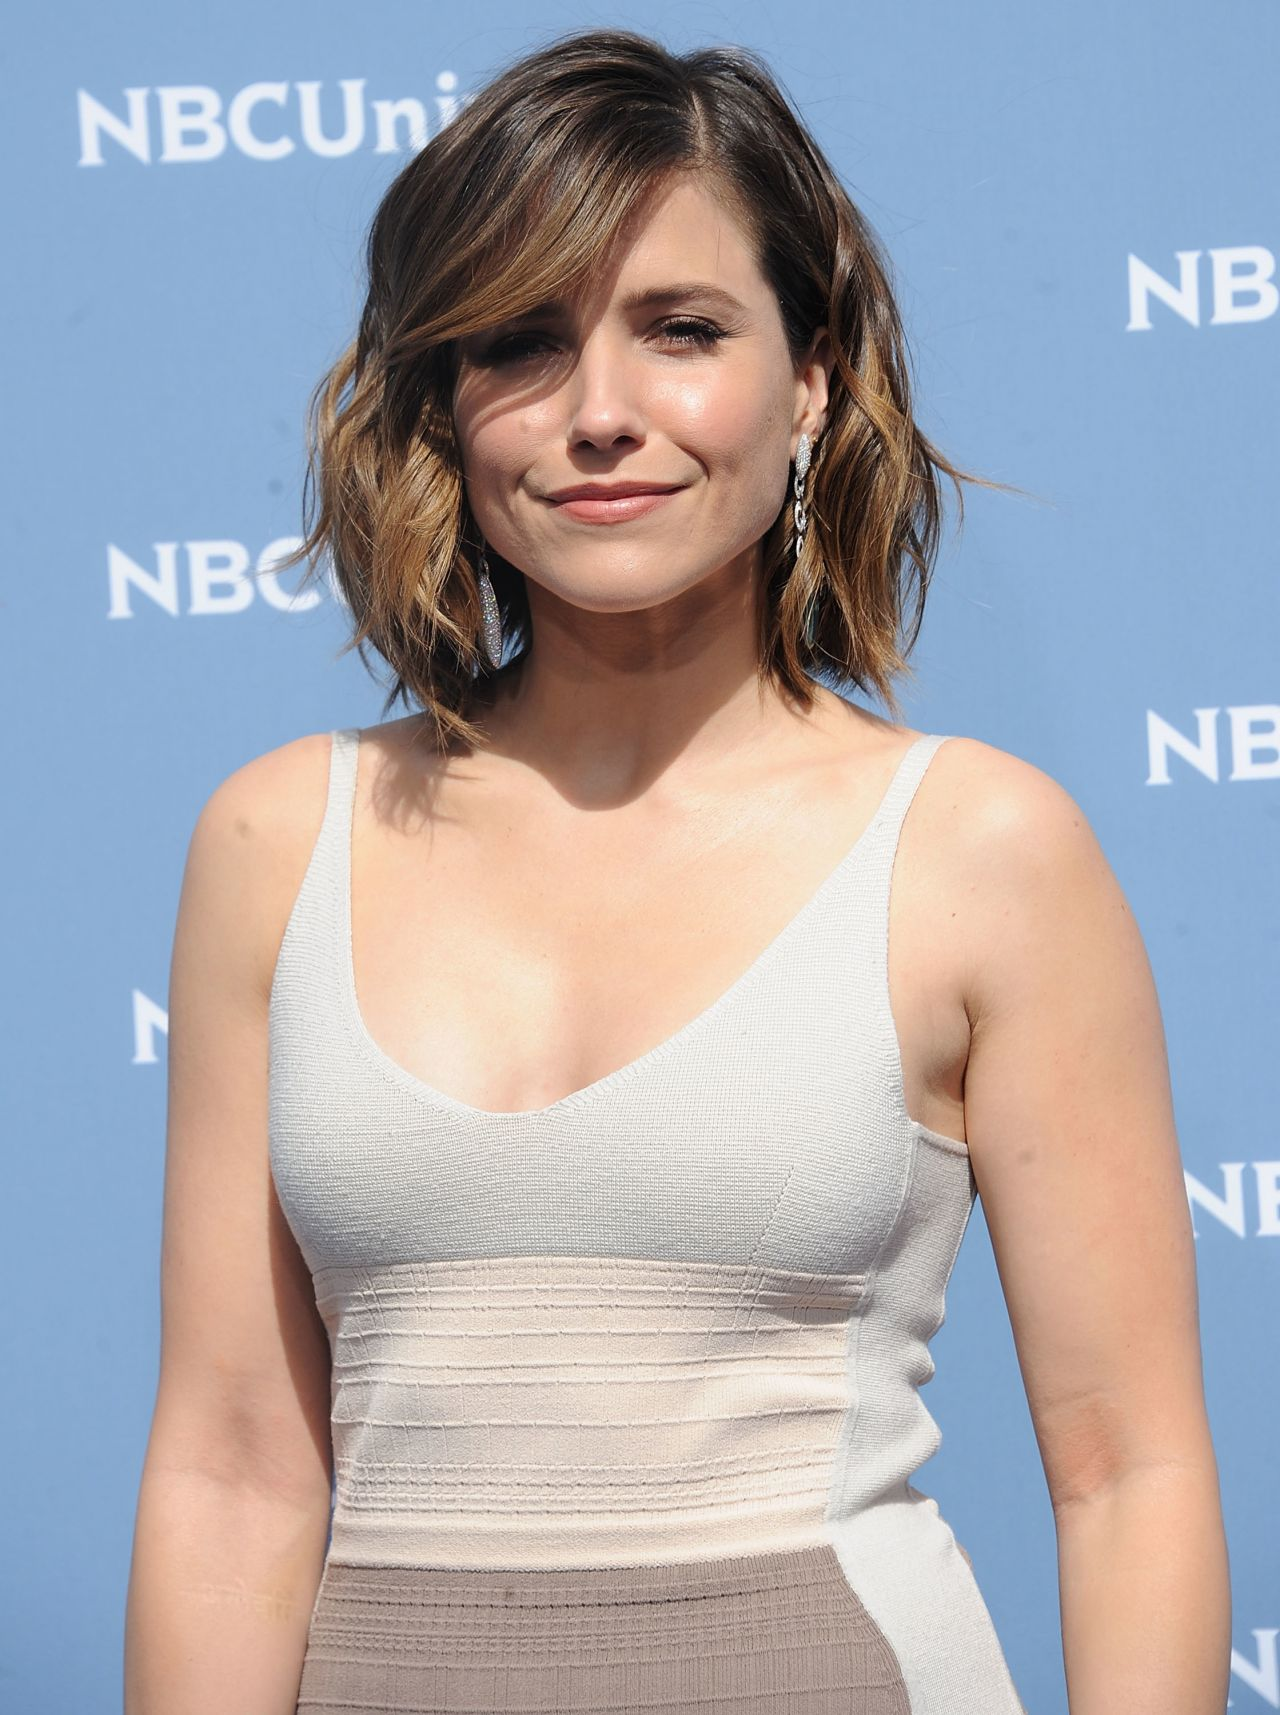 Sophia Bush Nbcuniversal Upfront Presentation In New